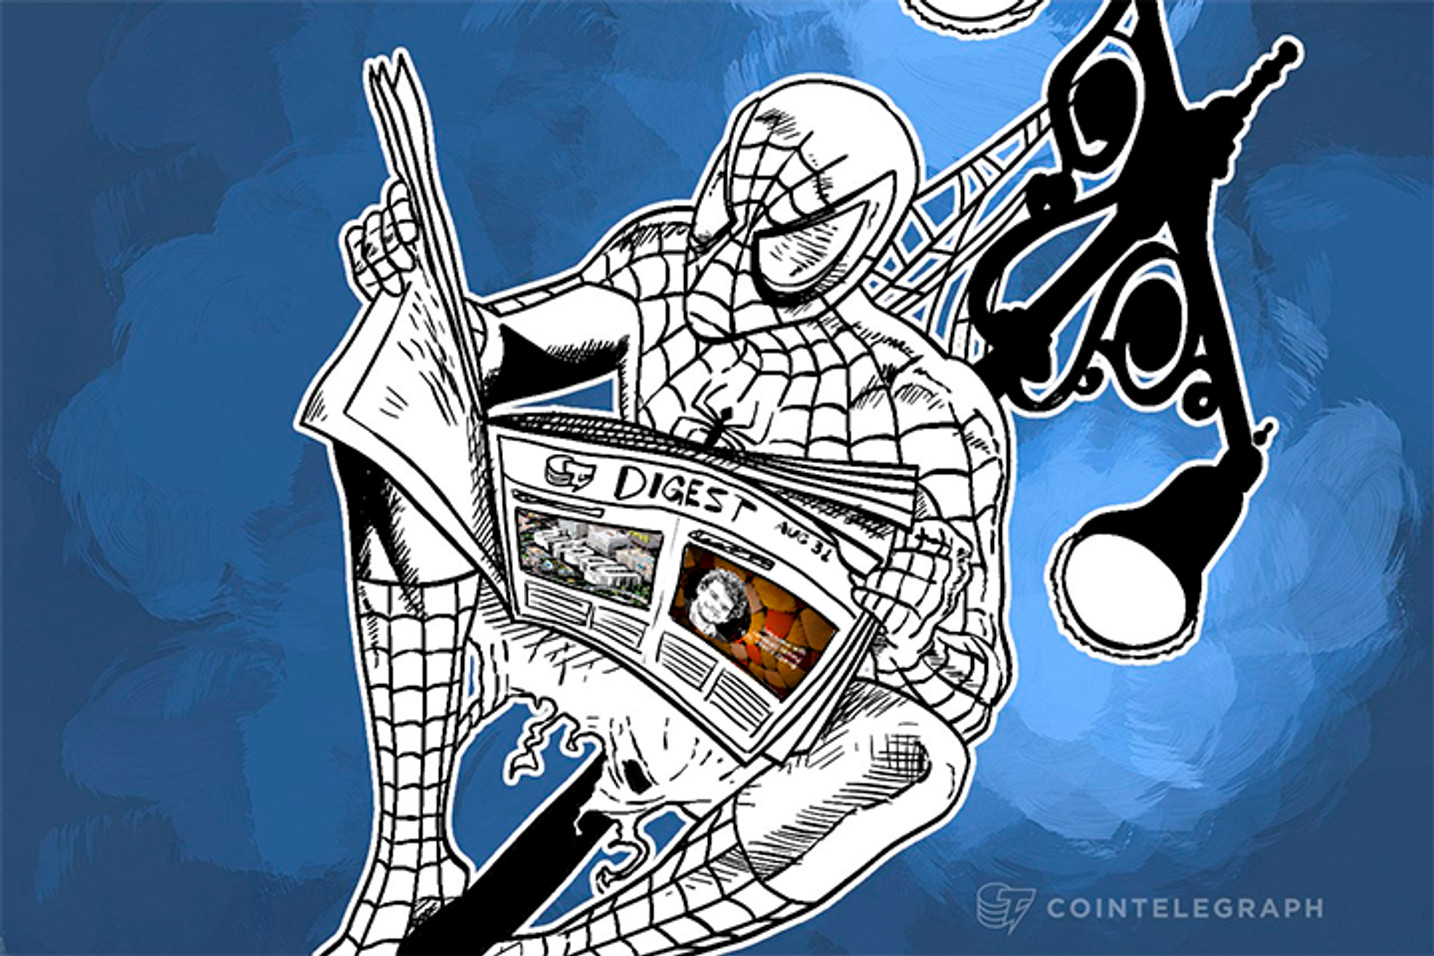 AUG 31 DIGEST: Barclays to Enable Charitable Bitcoin Donations; Coinbase Expands to Canada